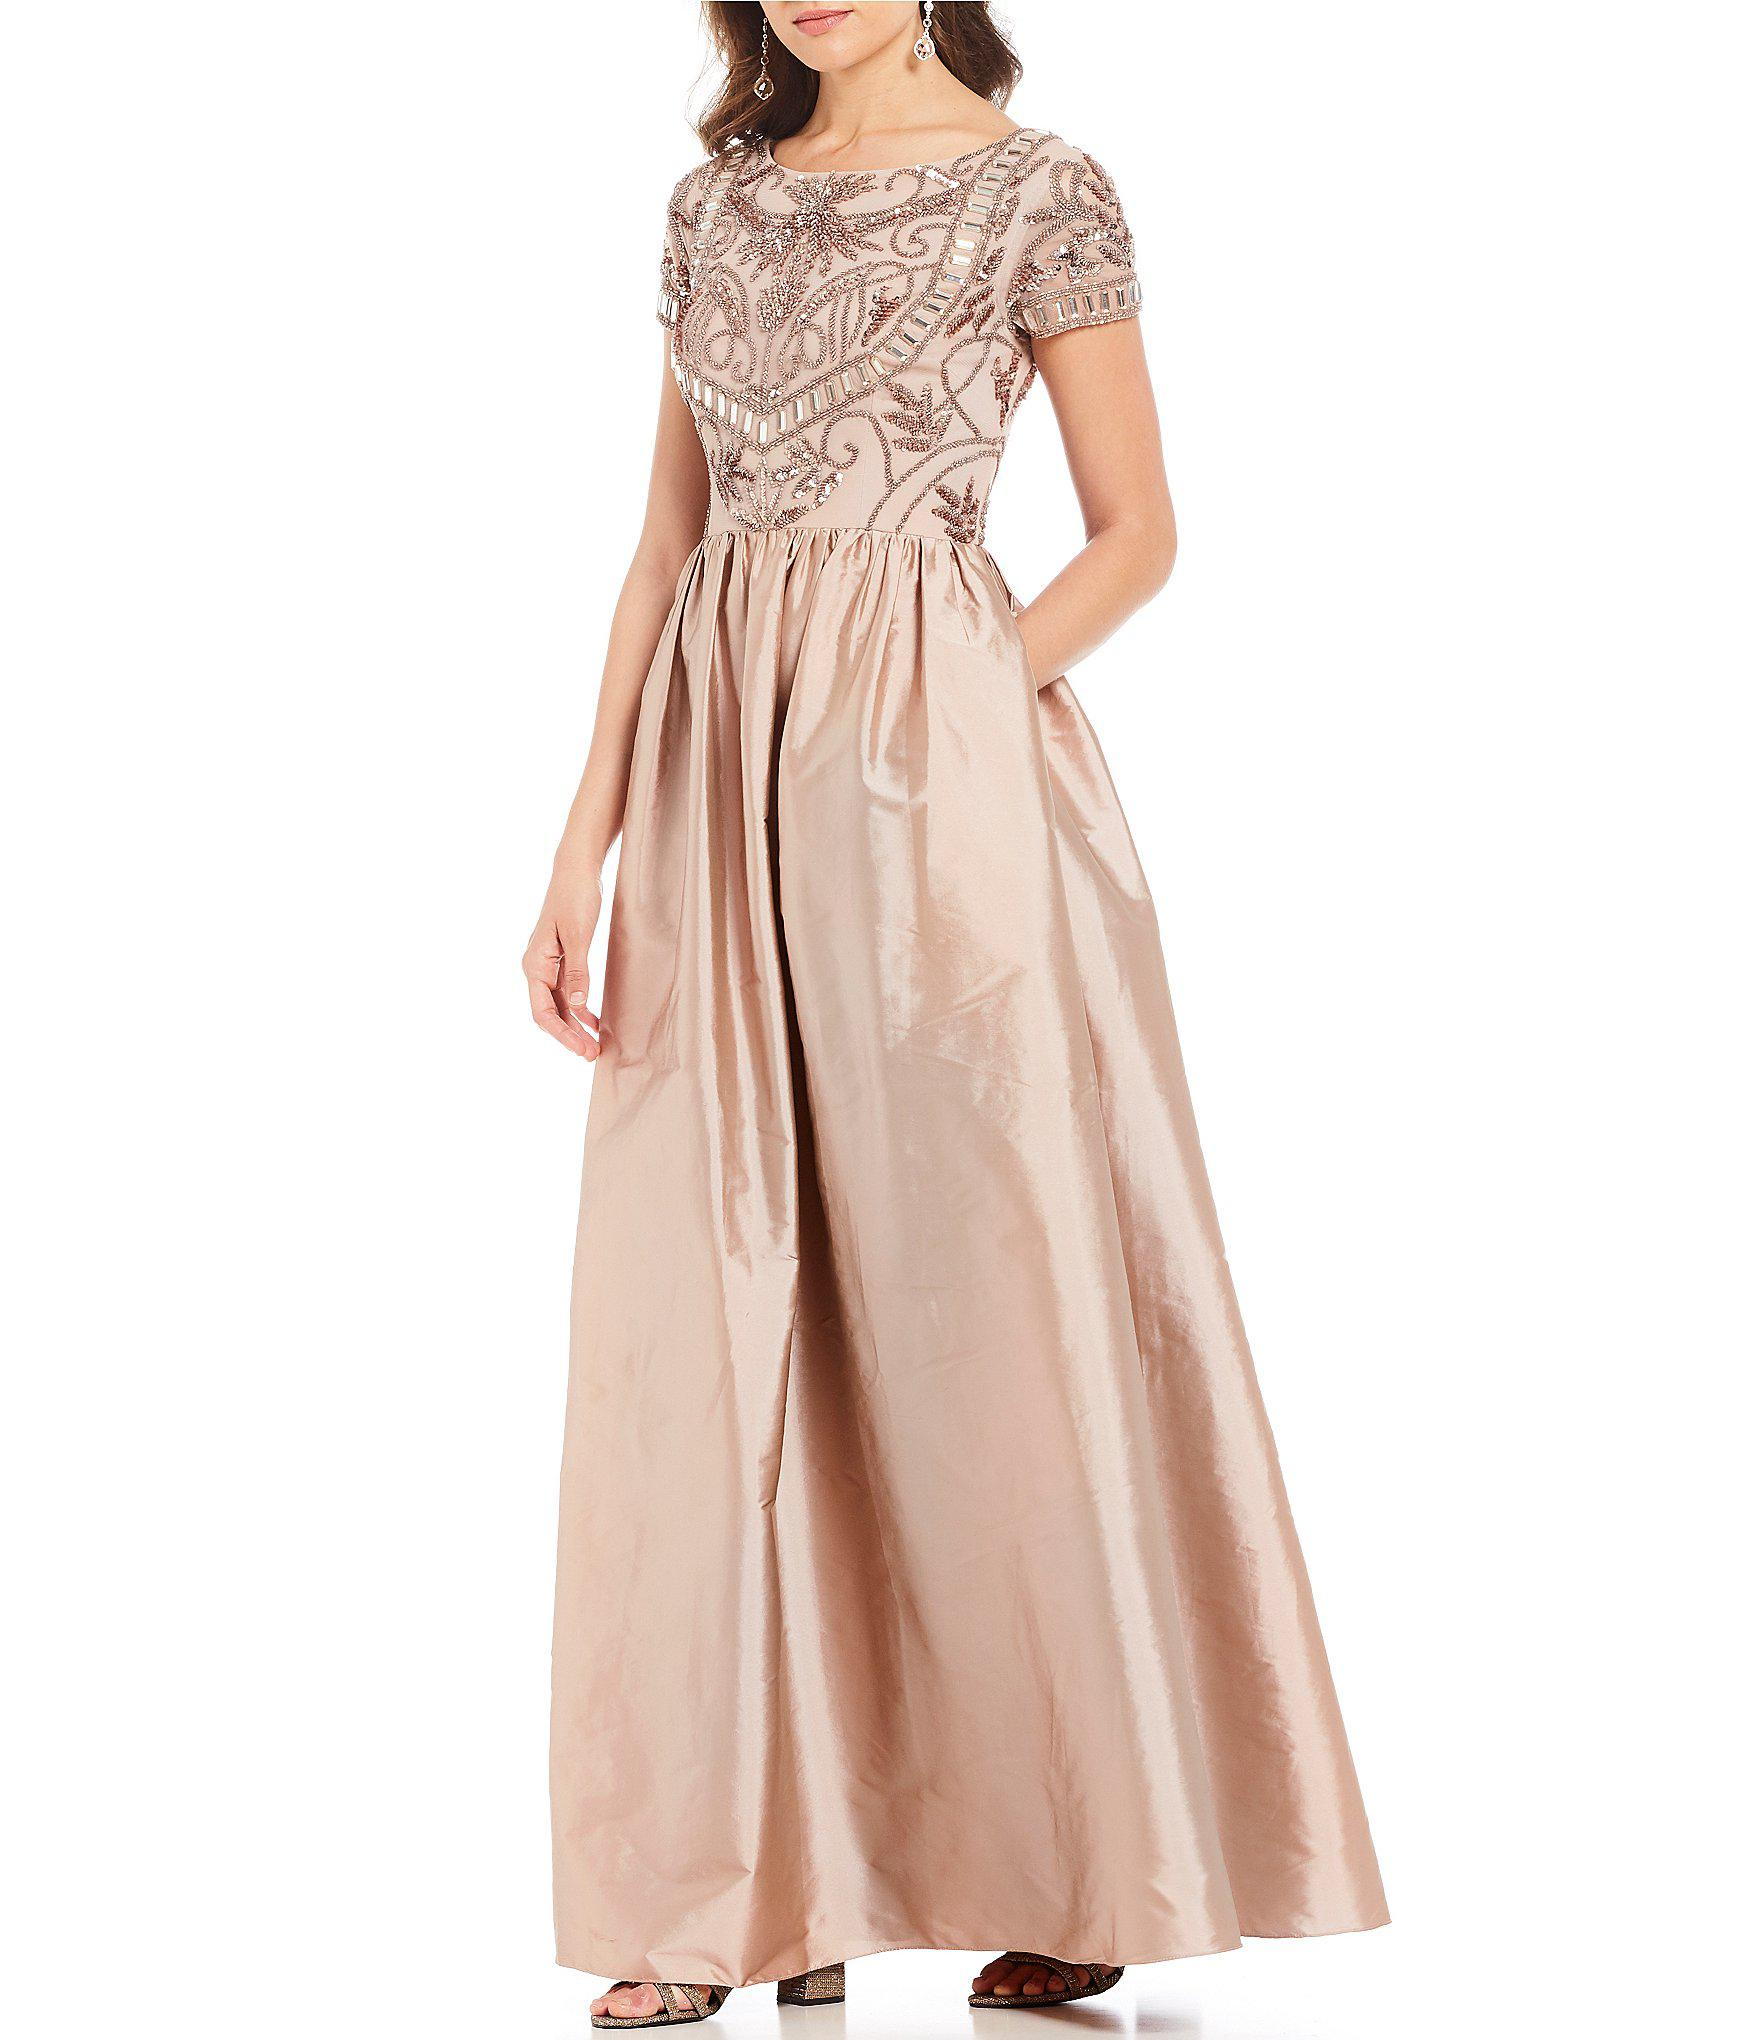 e07cc02867431 Lyst - Adrianna Papell Beaded Bodice Ballgown in Pink